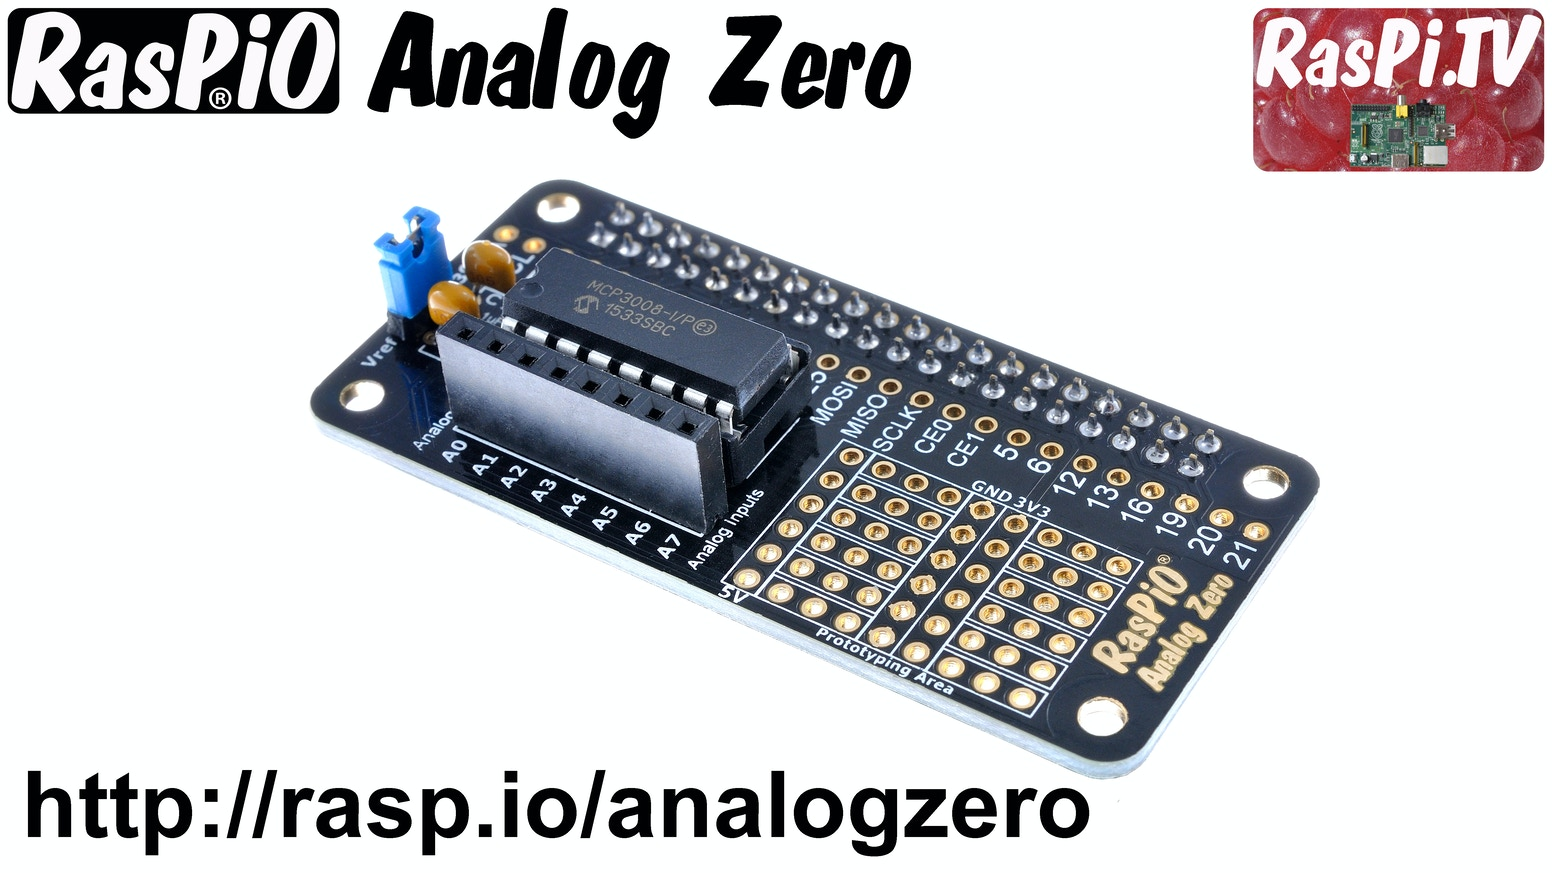 Read analog sensors with GPIO Zero. Make a weather station/ voltmeter/ digital thermometer. Fits any Raspberry Pi. Perfect for the Zero